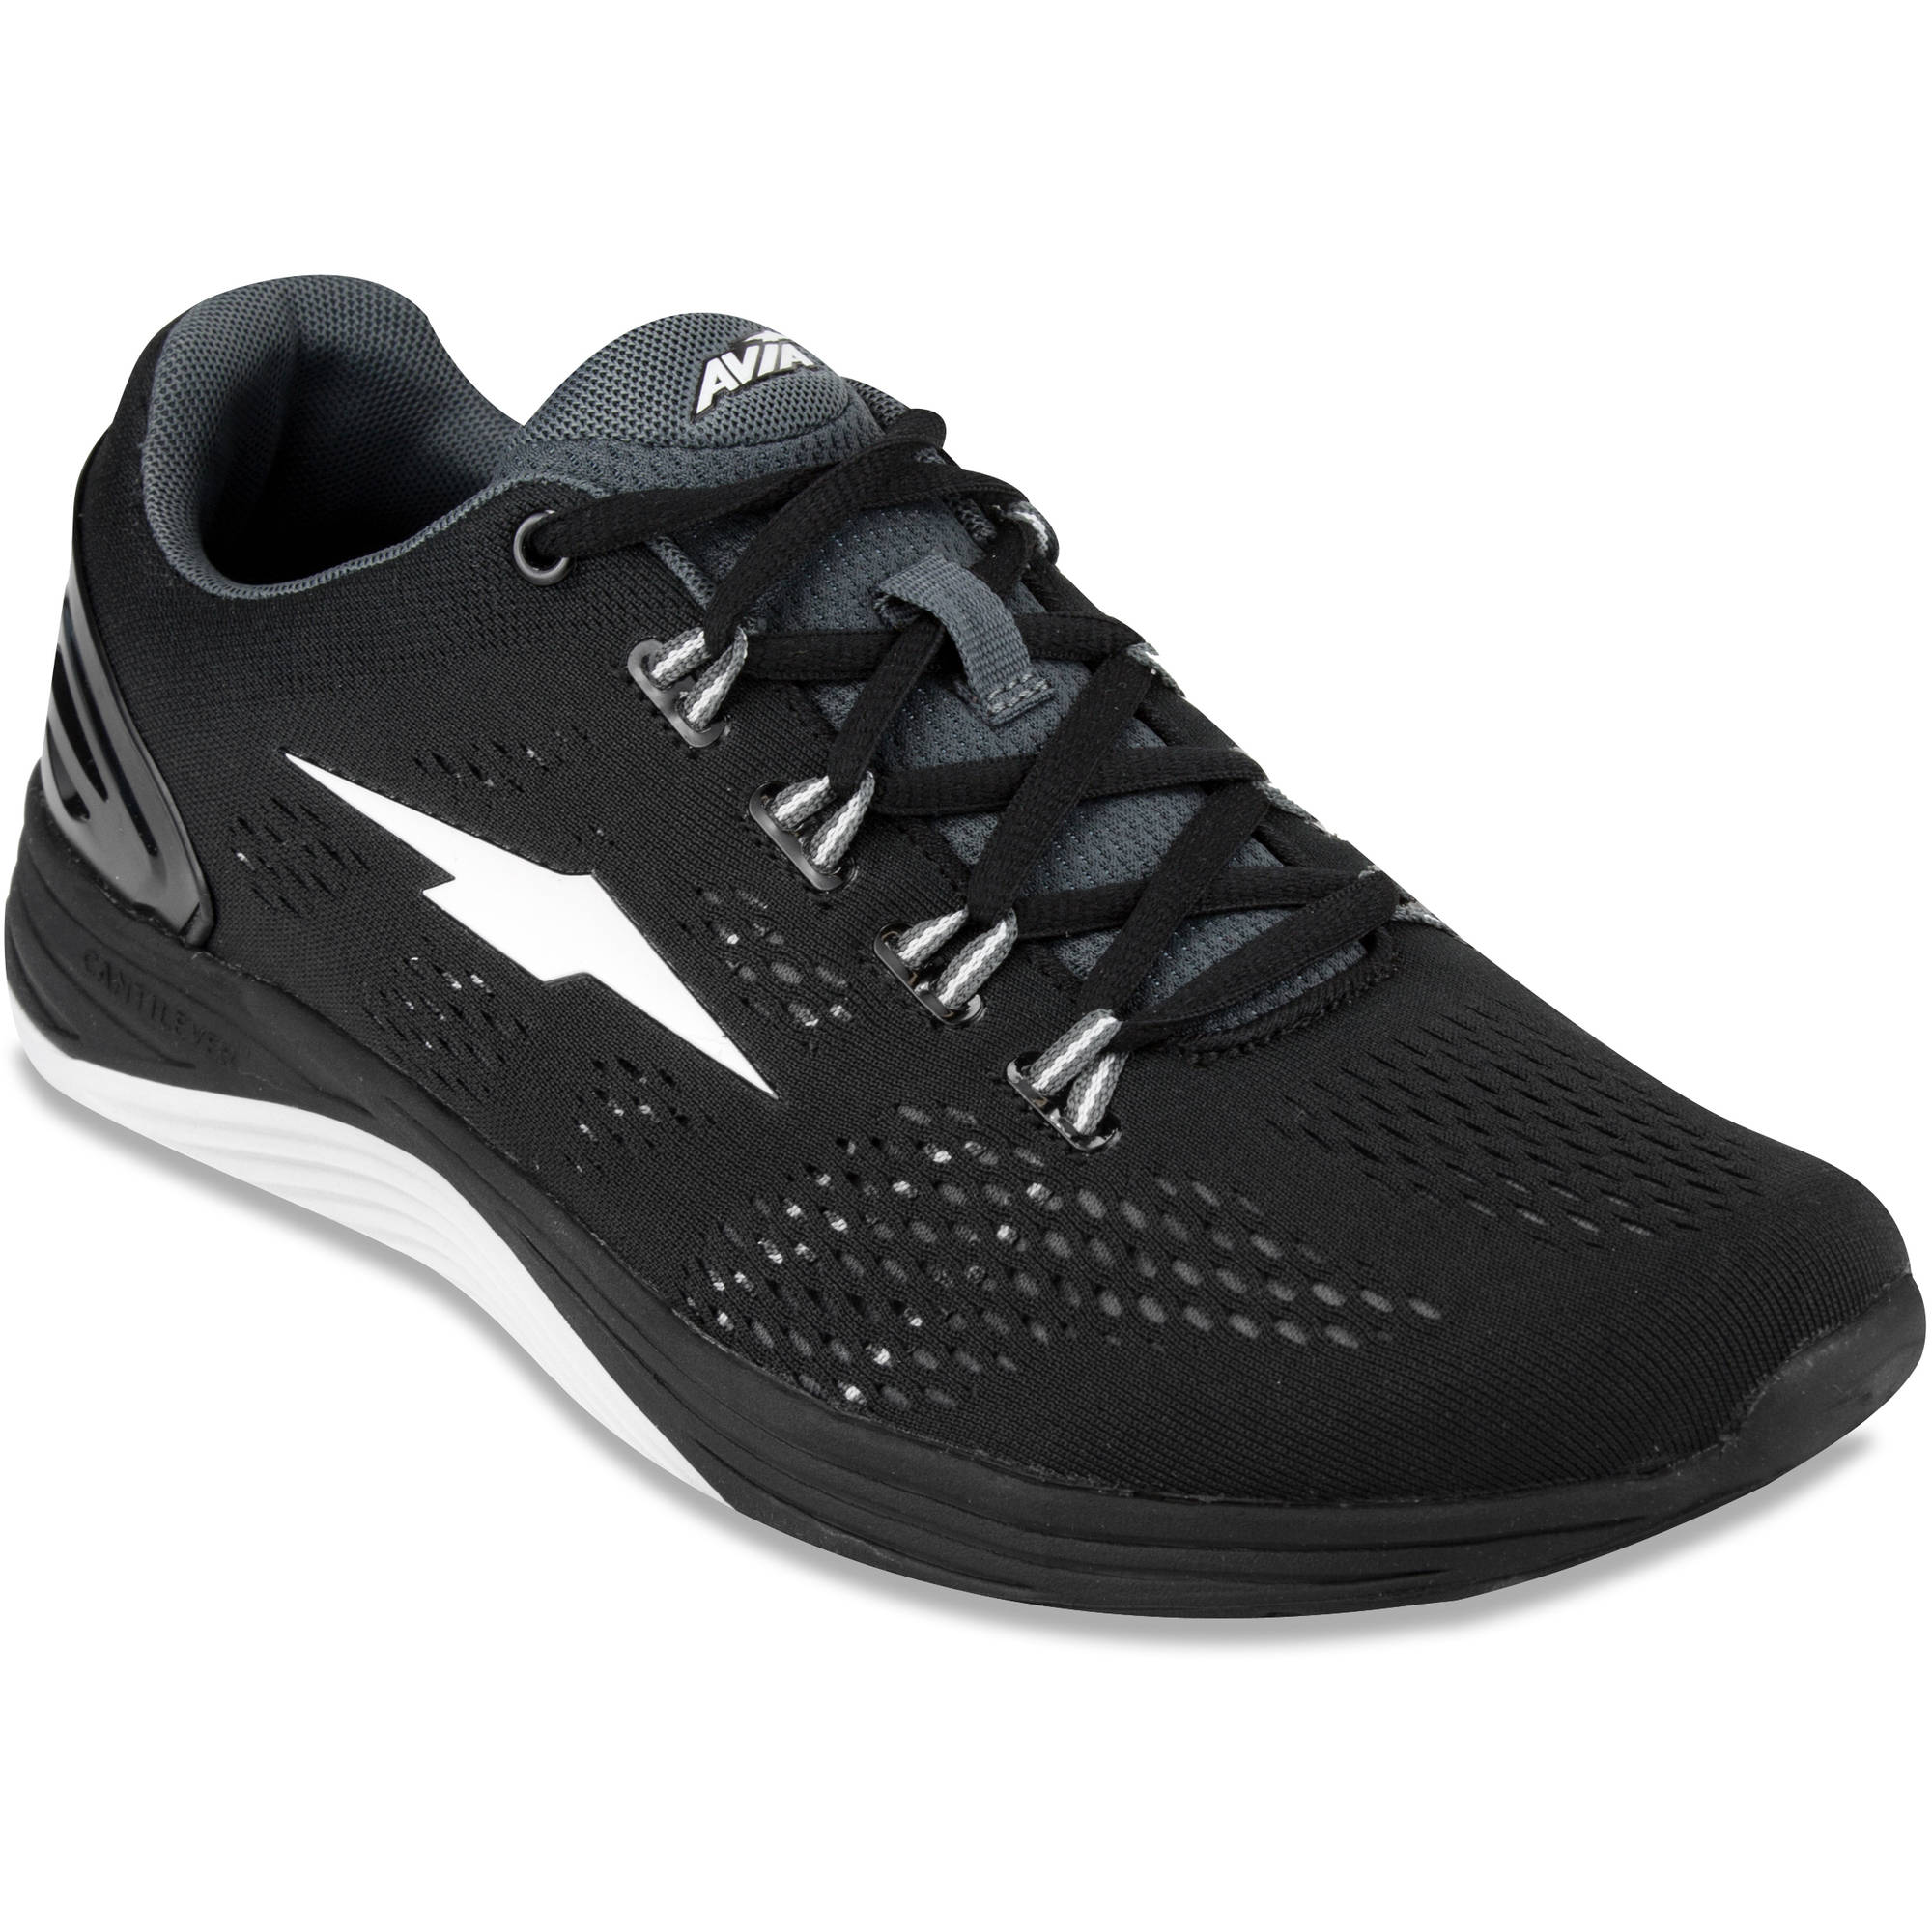 Avia Men's Enhance Running Shoe